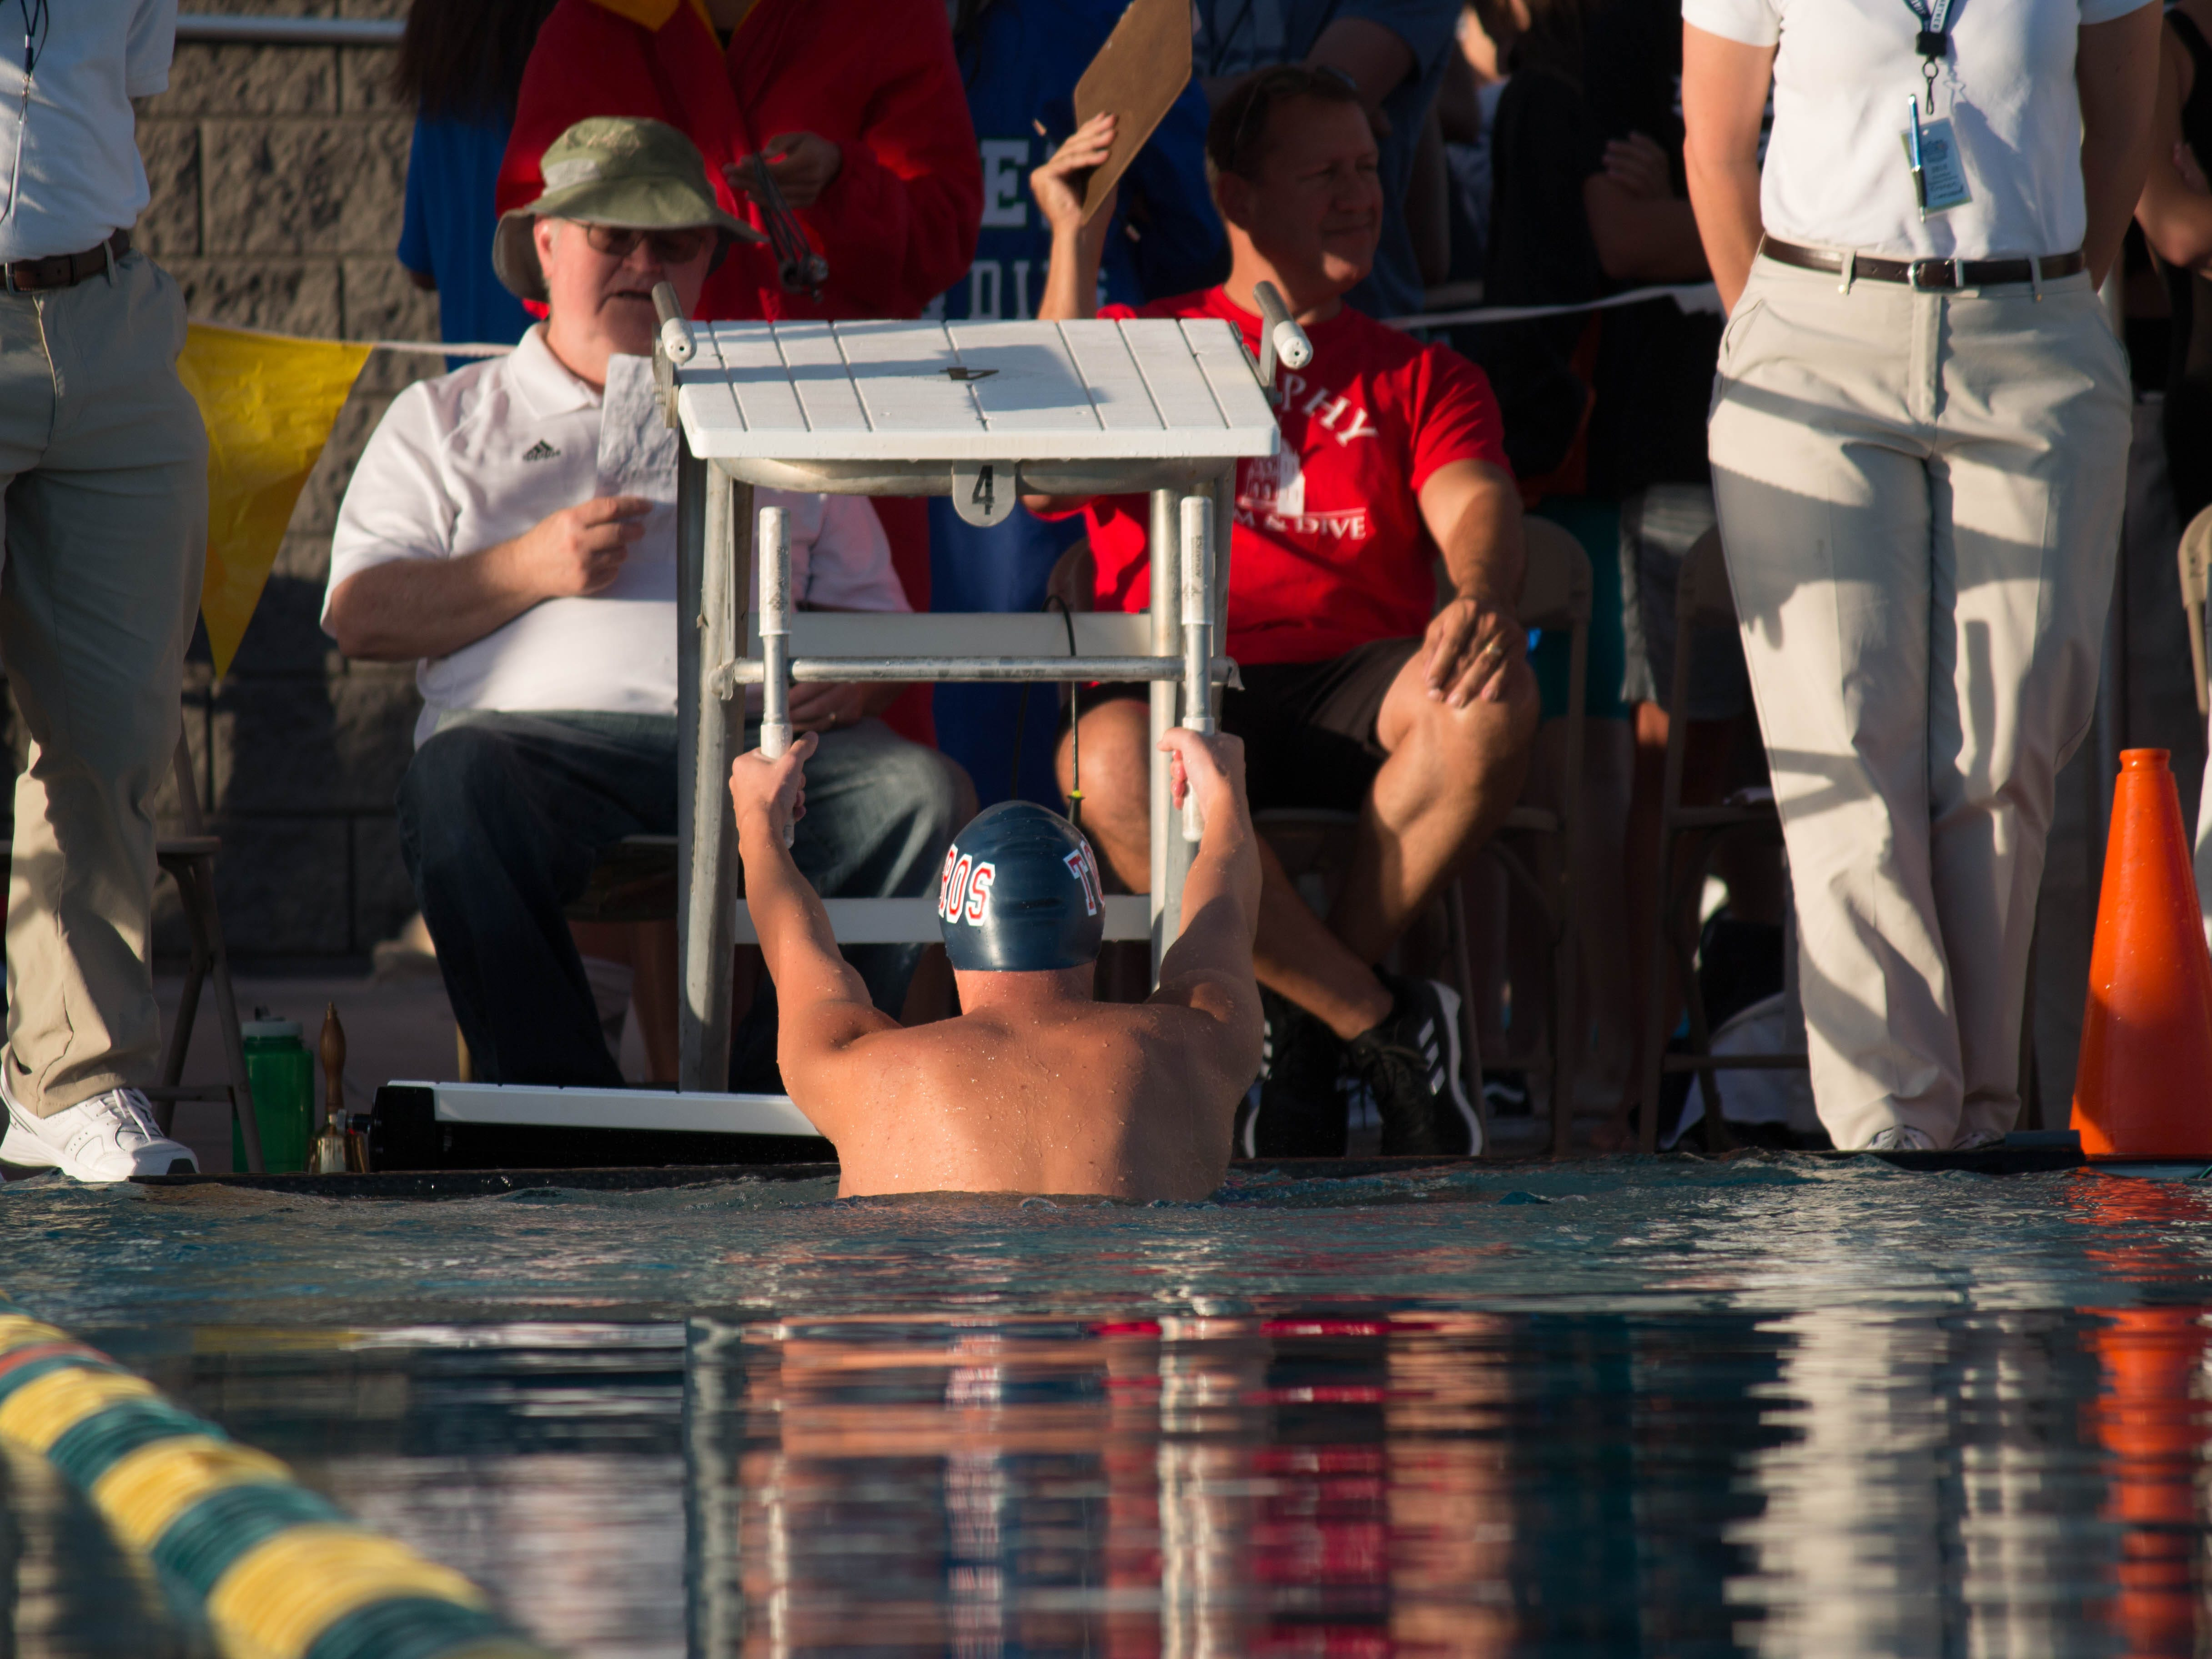 The Arizona State Division I Swimming Championships were held November 3, 2018. Carly Henry/azcentral